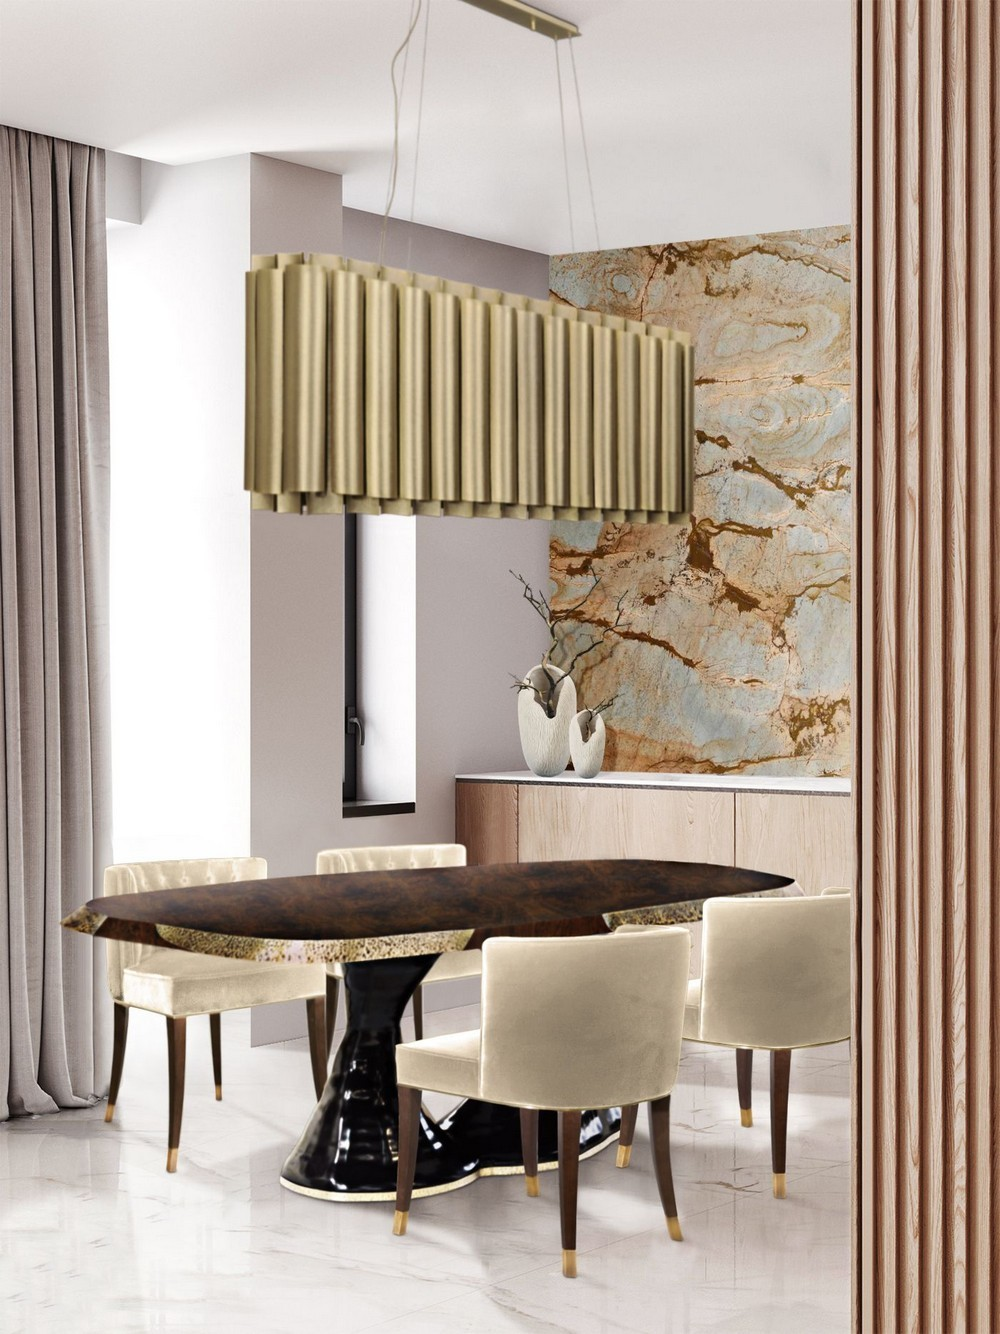 Luxury Dining Chairs To Transform Your Next Dining Room Project dining chairs Luxury Dining Chairs To Transform Your Next Dining Room Project wQPOeGEA